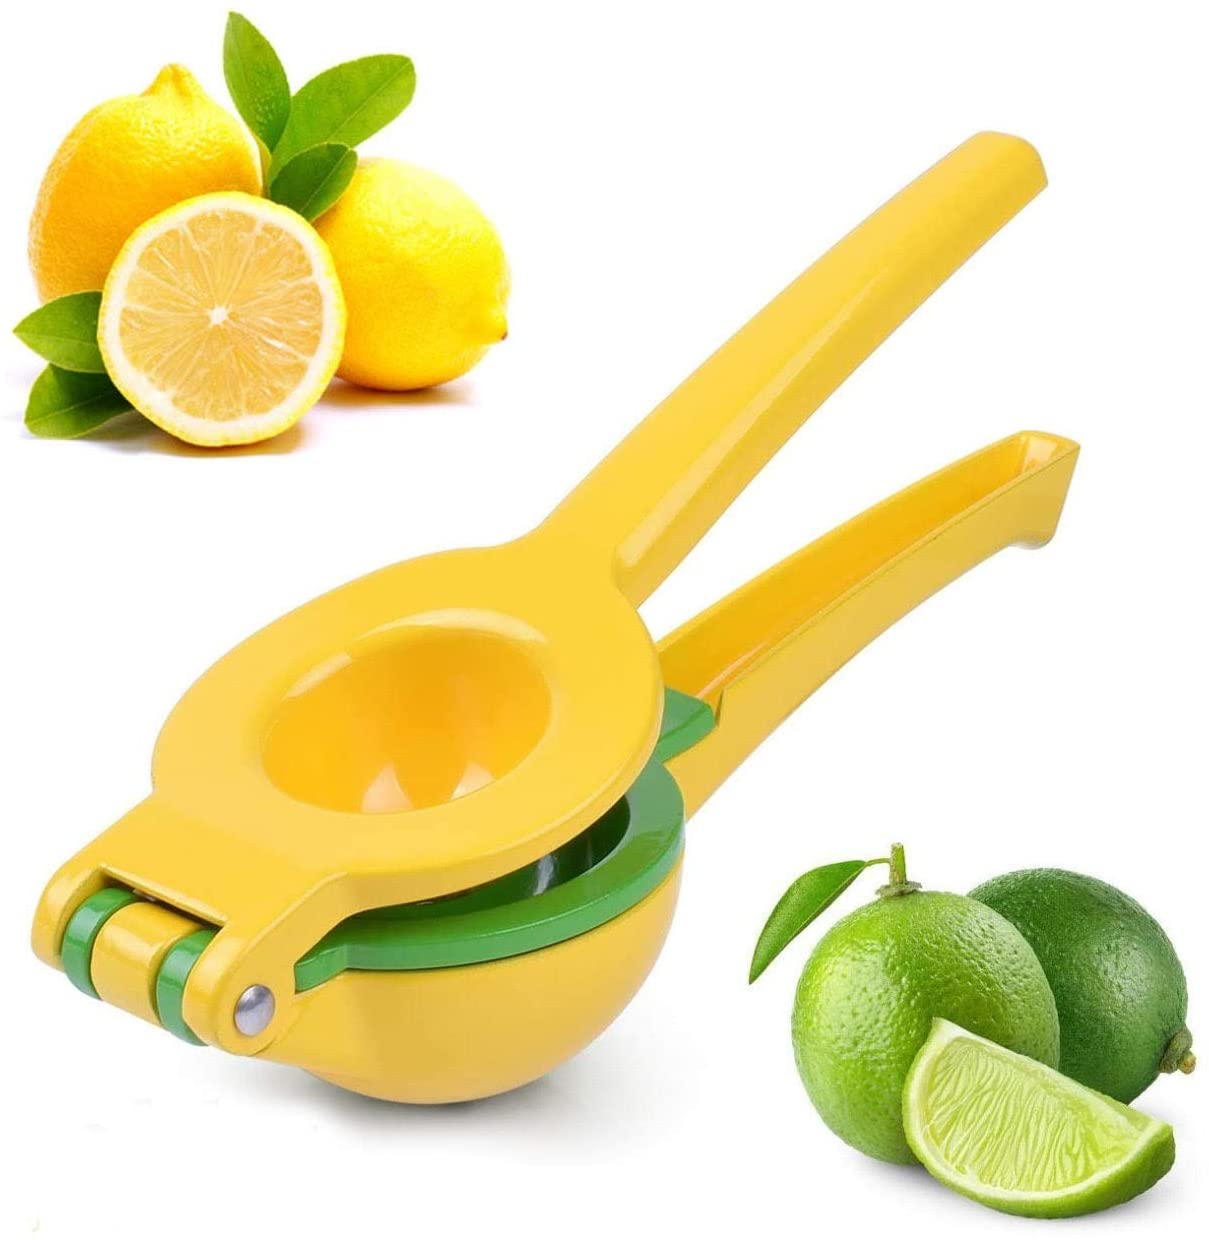 BEKKA 2-IN-1 PREMIUM METAL STAINLESS STELL ALUMINIUM MANUAL CITRUS SQUEEZER JUICER LEMON LIME SMALL ORANGES